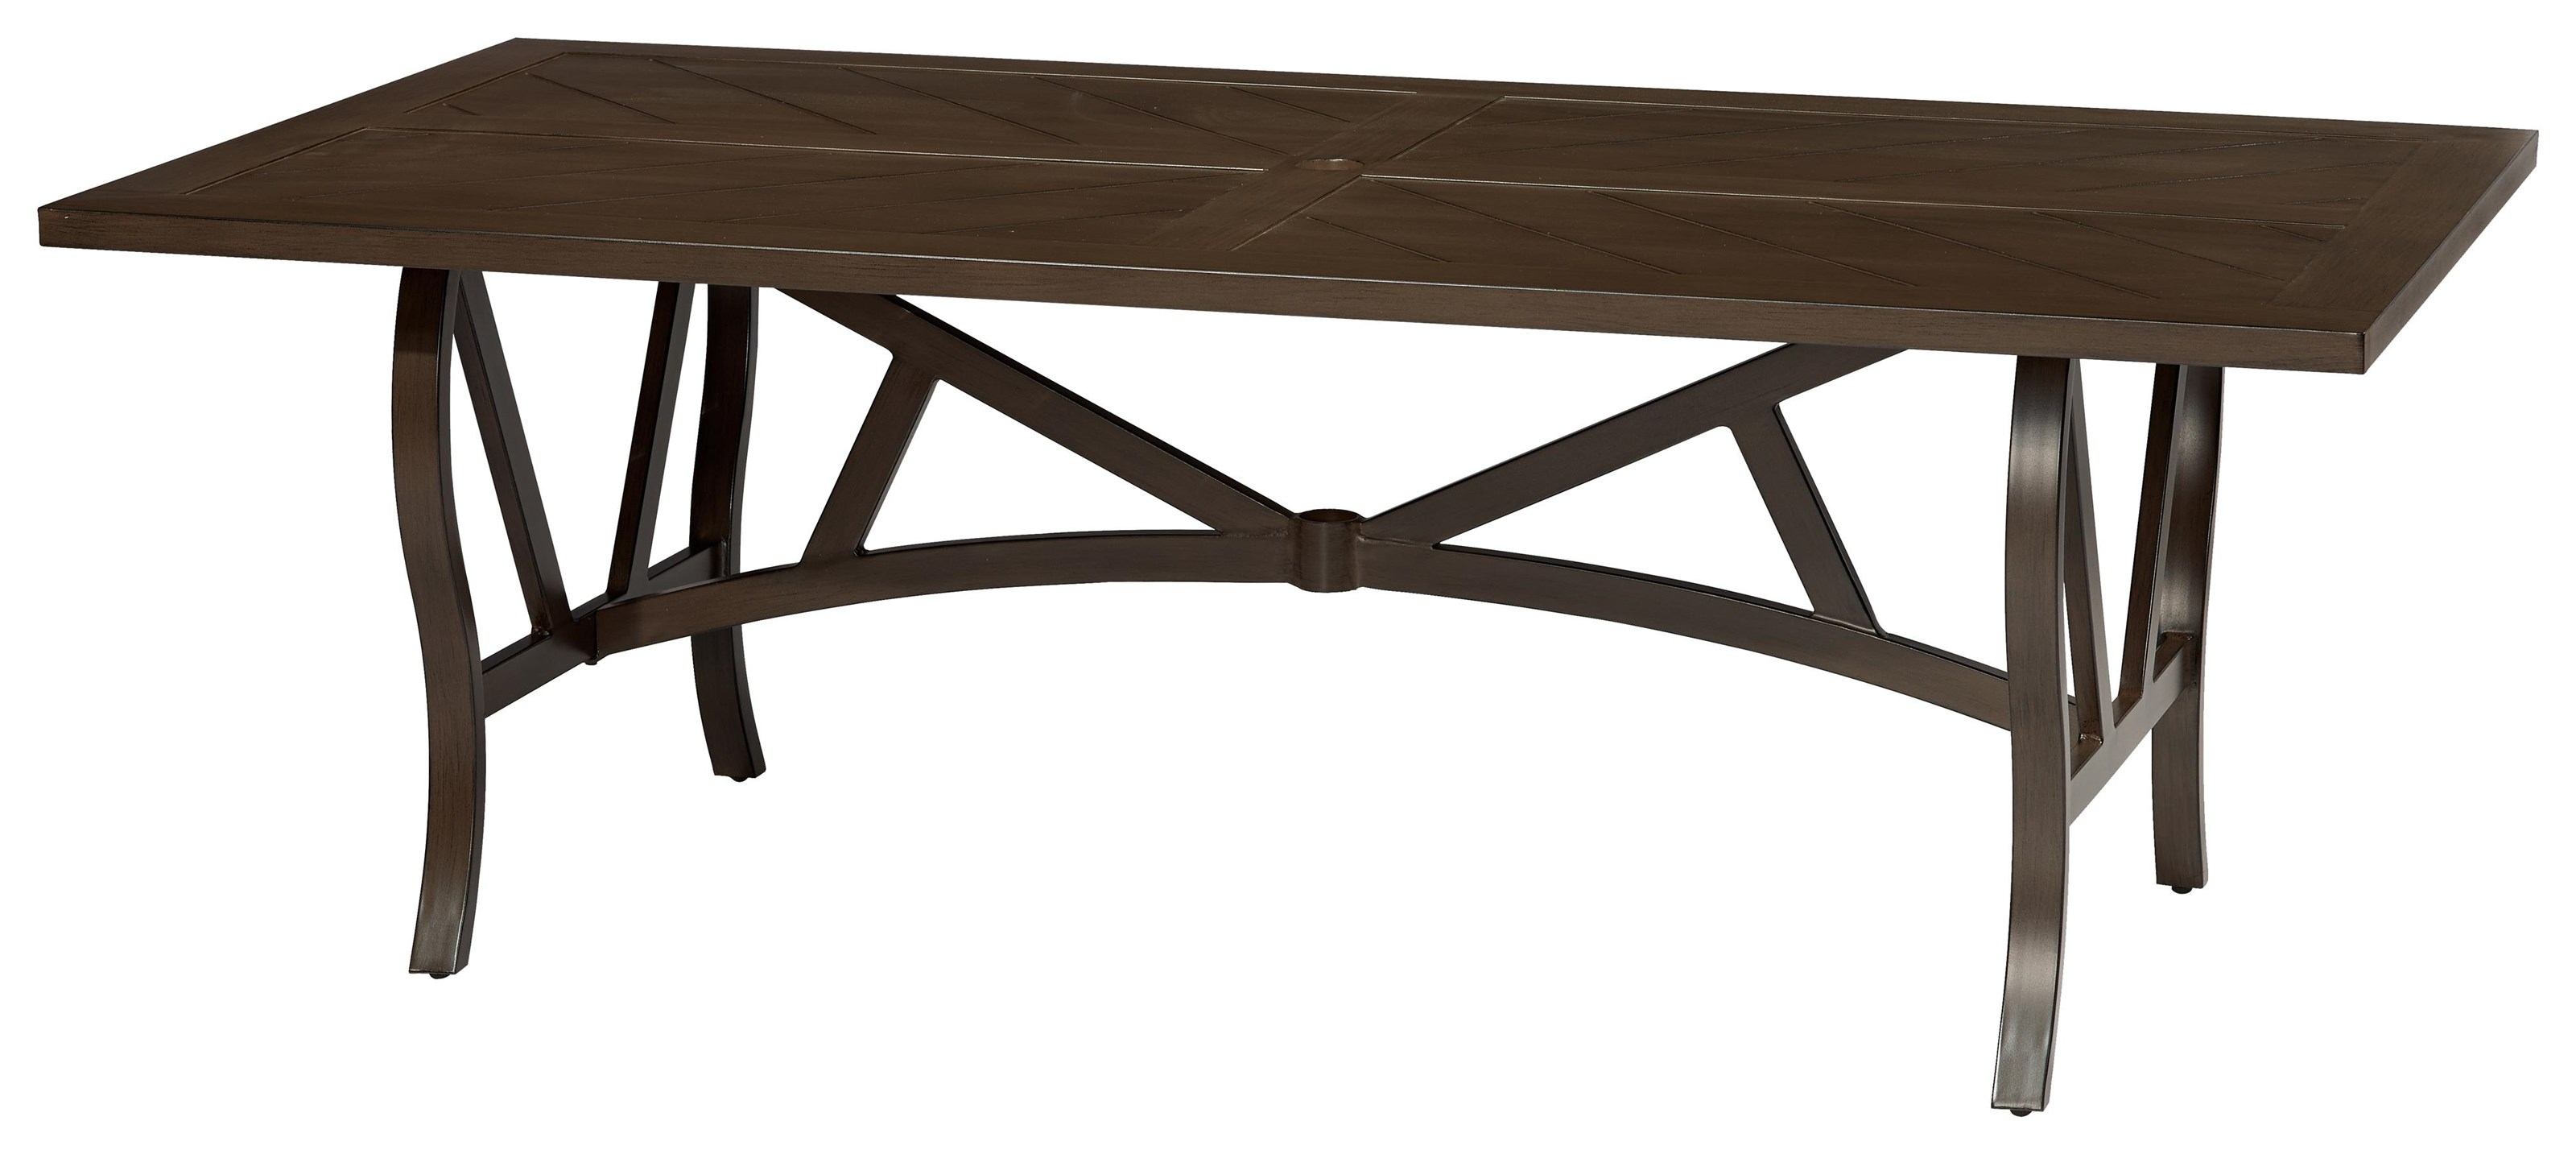 Trenton Rectangular Dining Table by Apricity Outdoor at Johnny Janosik